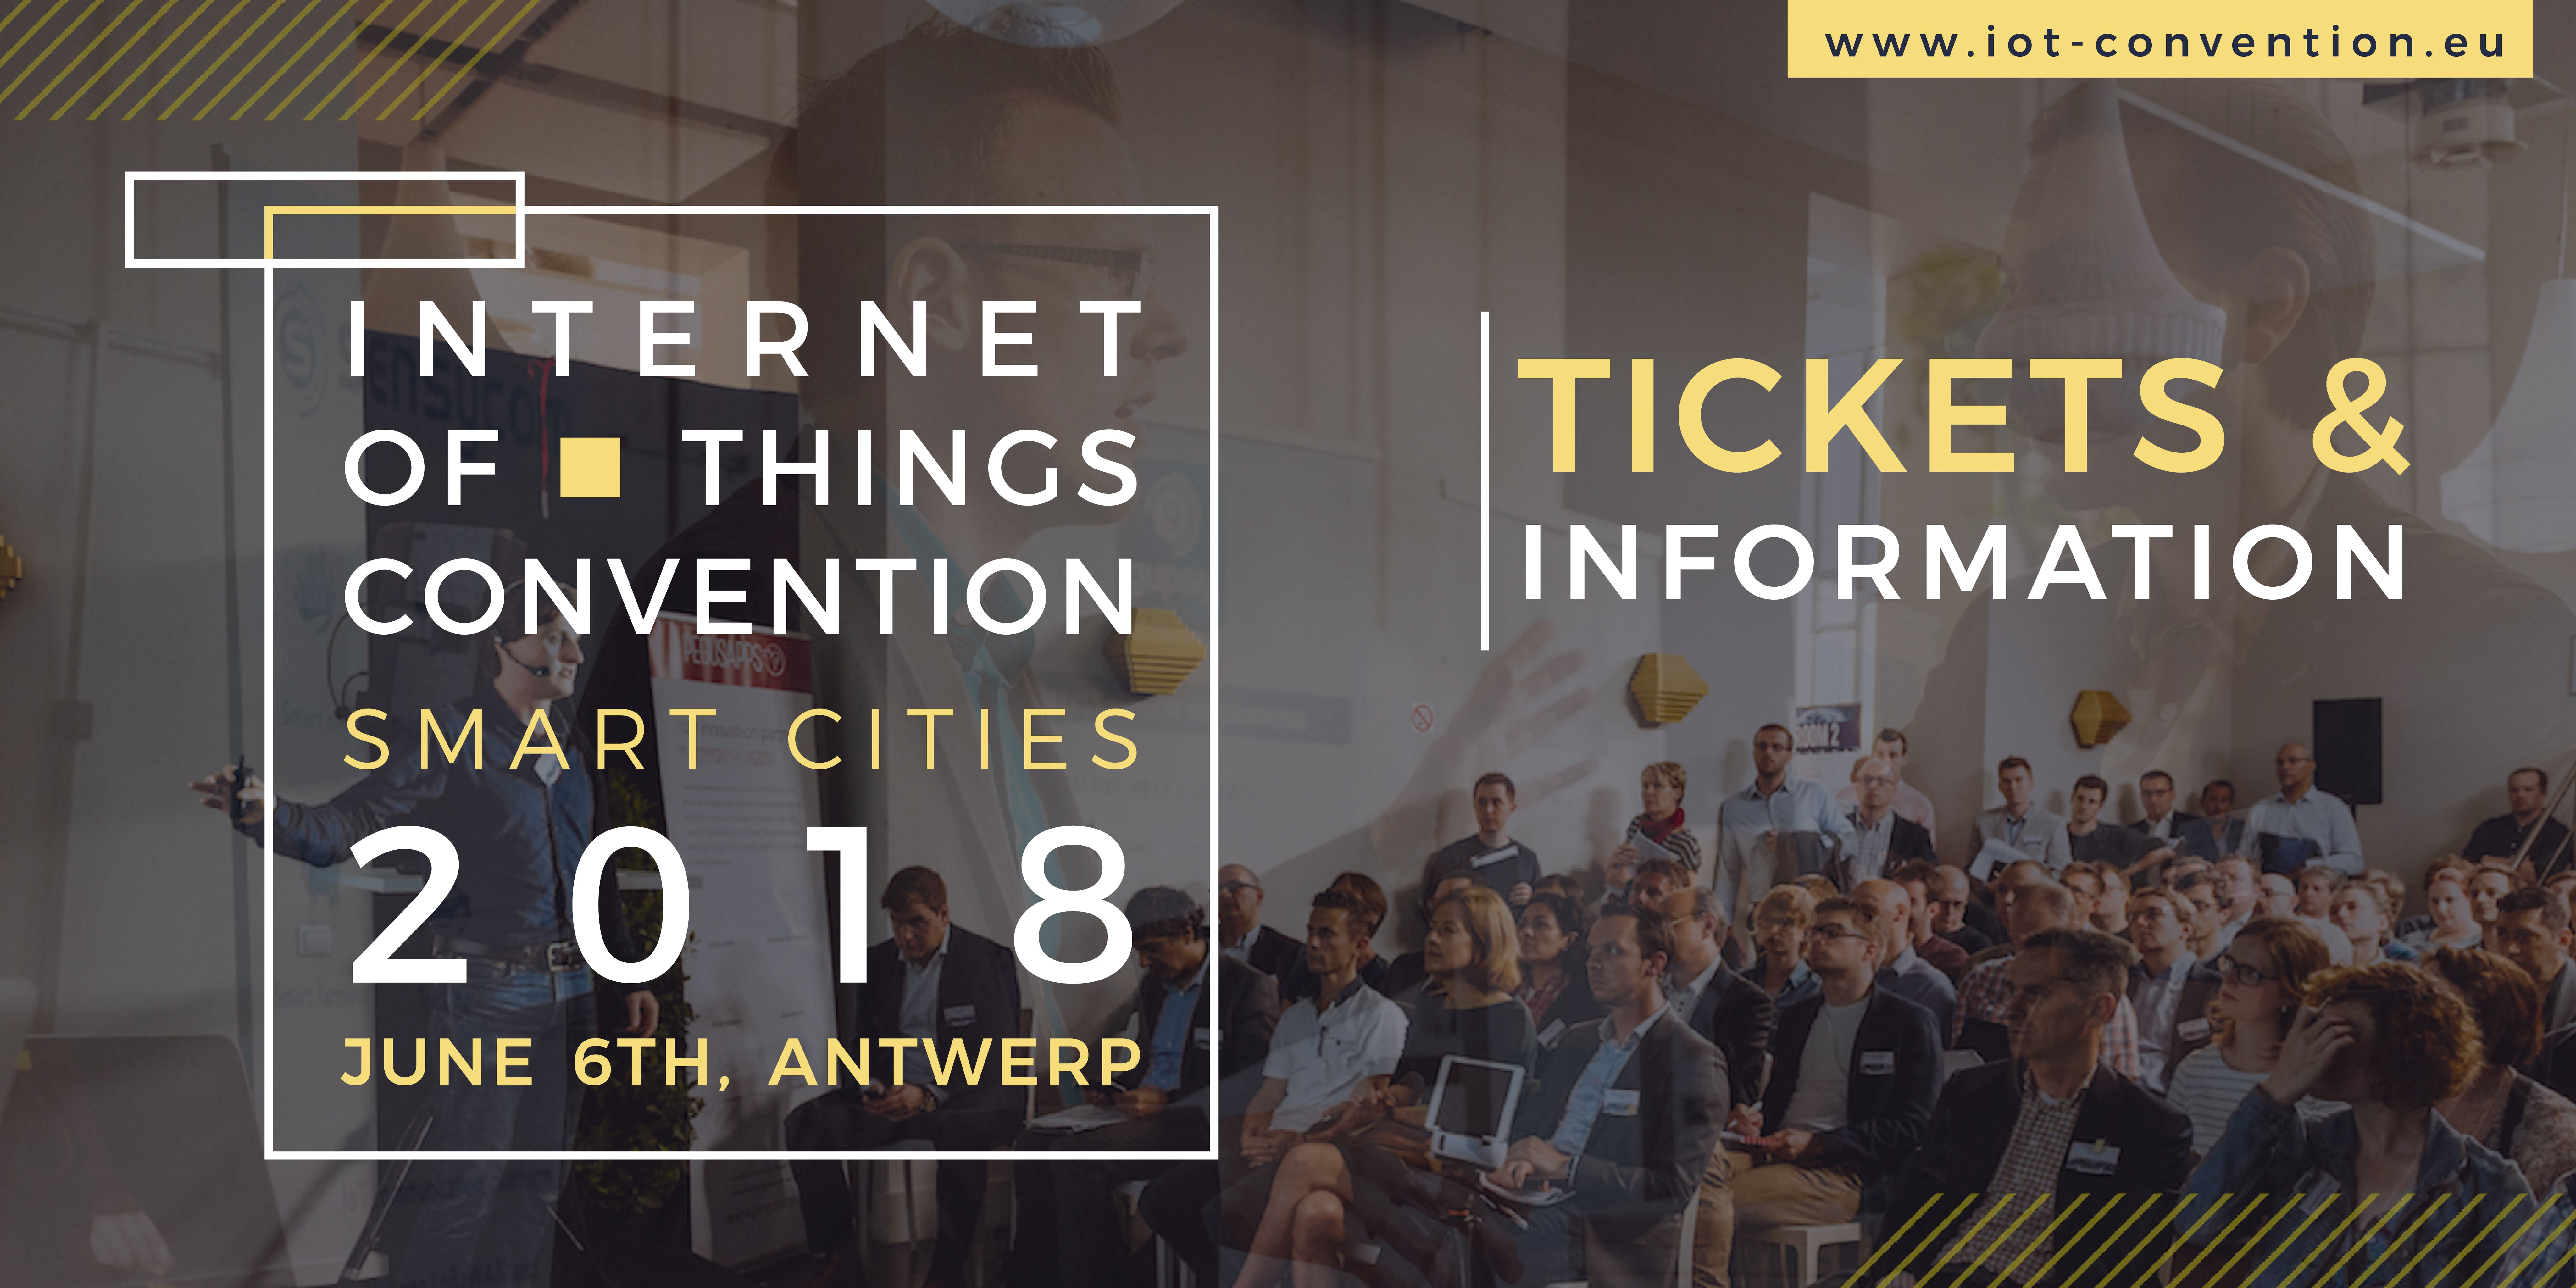 INTERNET OF THINGS CONVENTION 2018